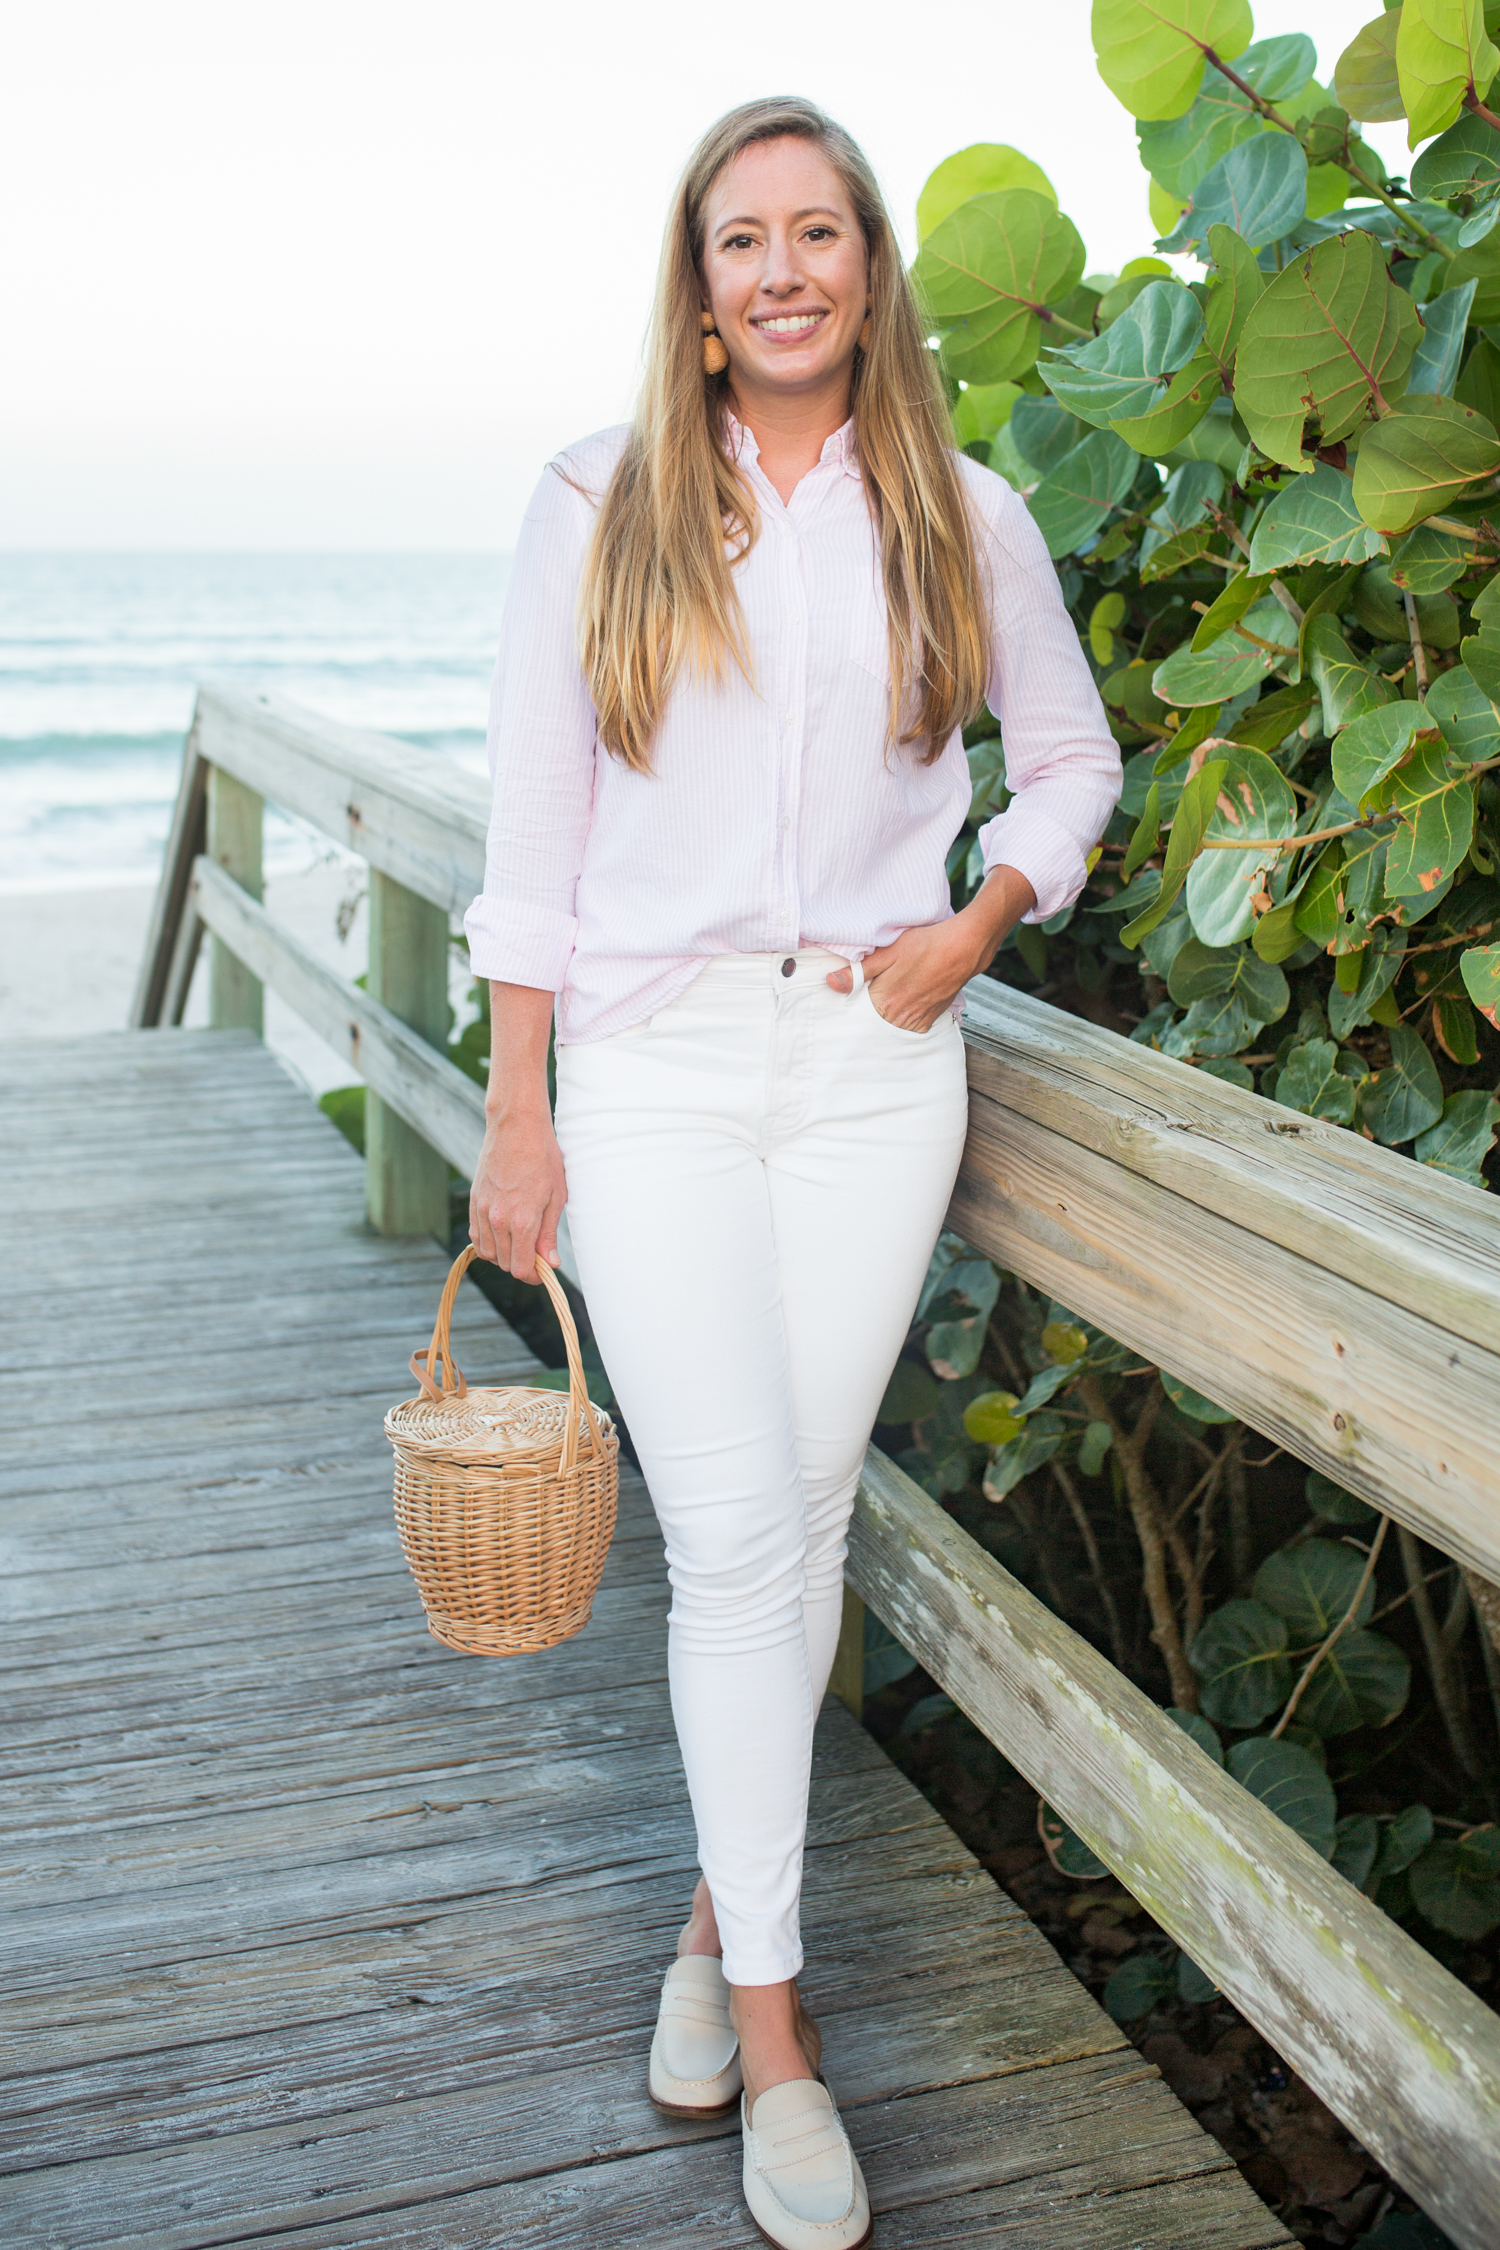 How to Dress Preppy on a Budget / Preppy Women's Outfits / Spring Outfits Preppy / Preppy Outfits Summer / Preppy Essentials / Striped Button Up Oxford / Where to Buy Preppy Clothes / Second Hand Preppy Clothes -Sunshine Style, A Florida Fashion and Lifestyle Blog